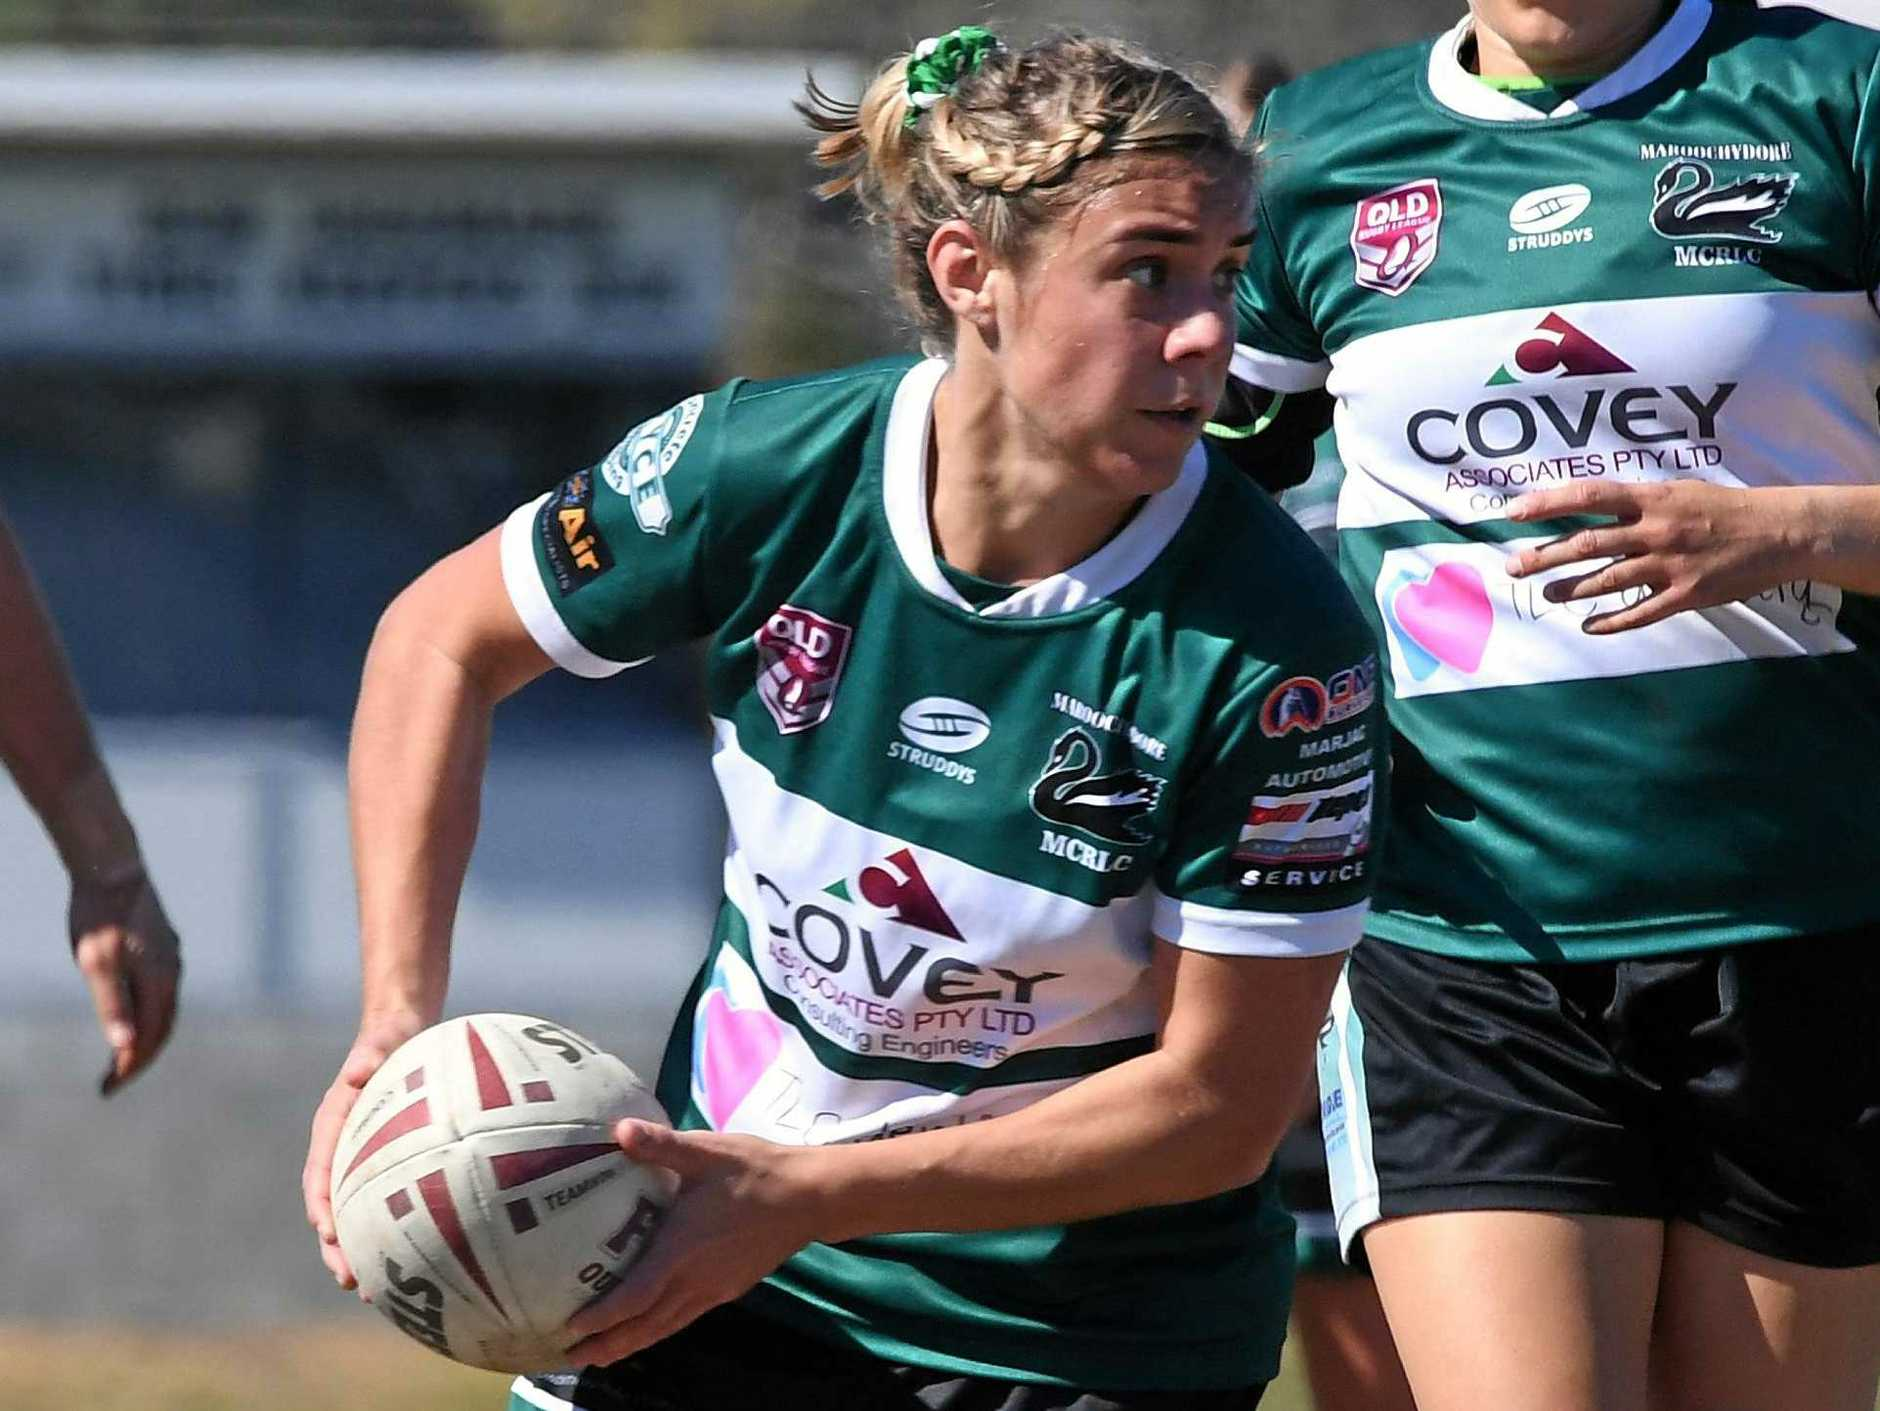 STRONG: Maroochydore will battle Gympie in the women's grand final on Sunday at Sunshine Coast Stadium. Pictured is Maroochydore half back Codi Dalley in action during her side's win over Caboolture in the preliminary final.